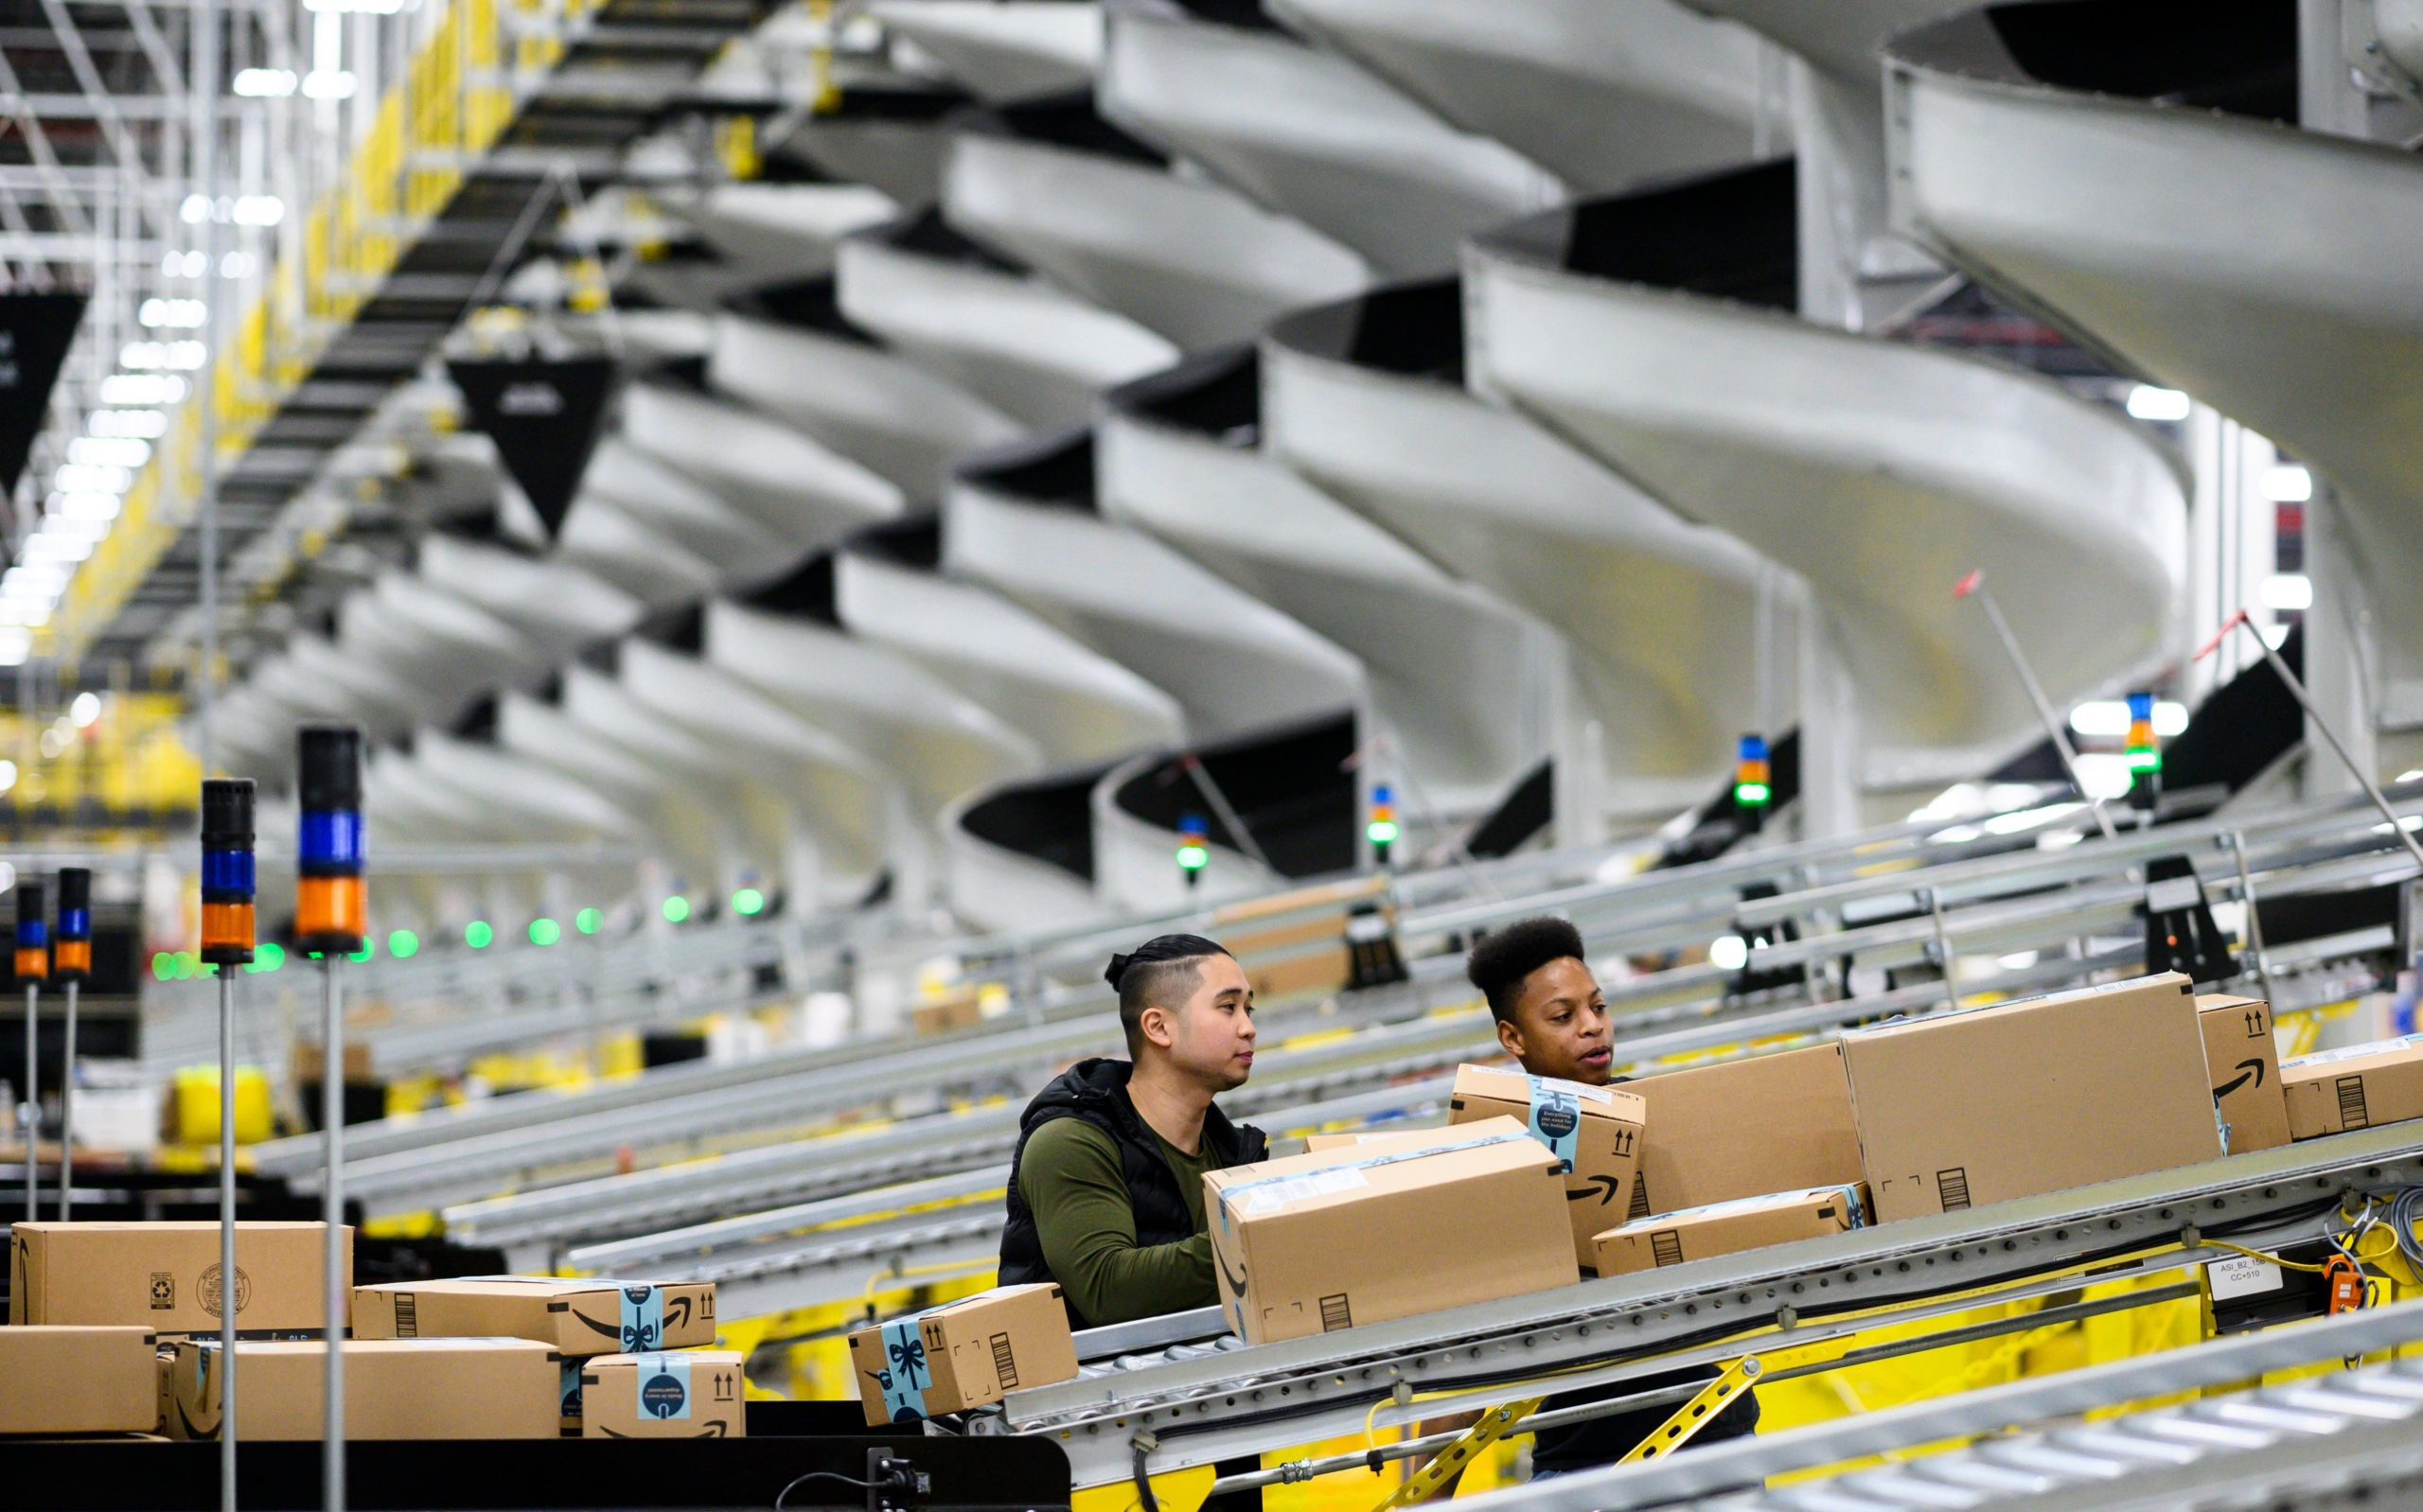 Amazon employees work on Feb. 5, 2019 at a New York City warehouse. (Johannes Eisele/AFP via Getty Images)